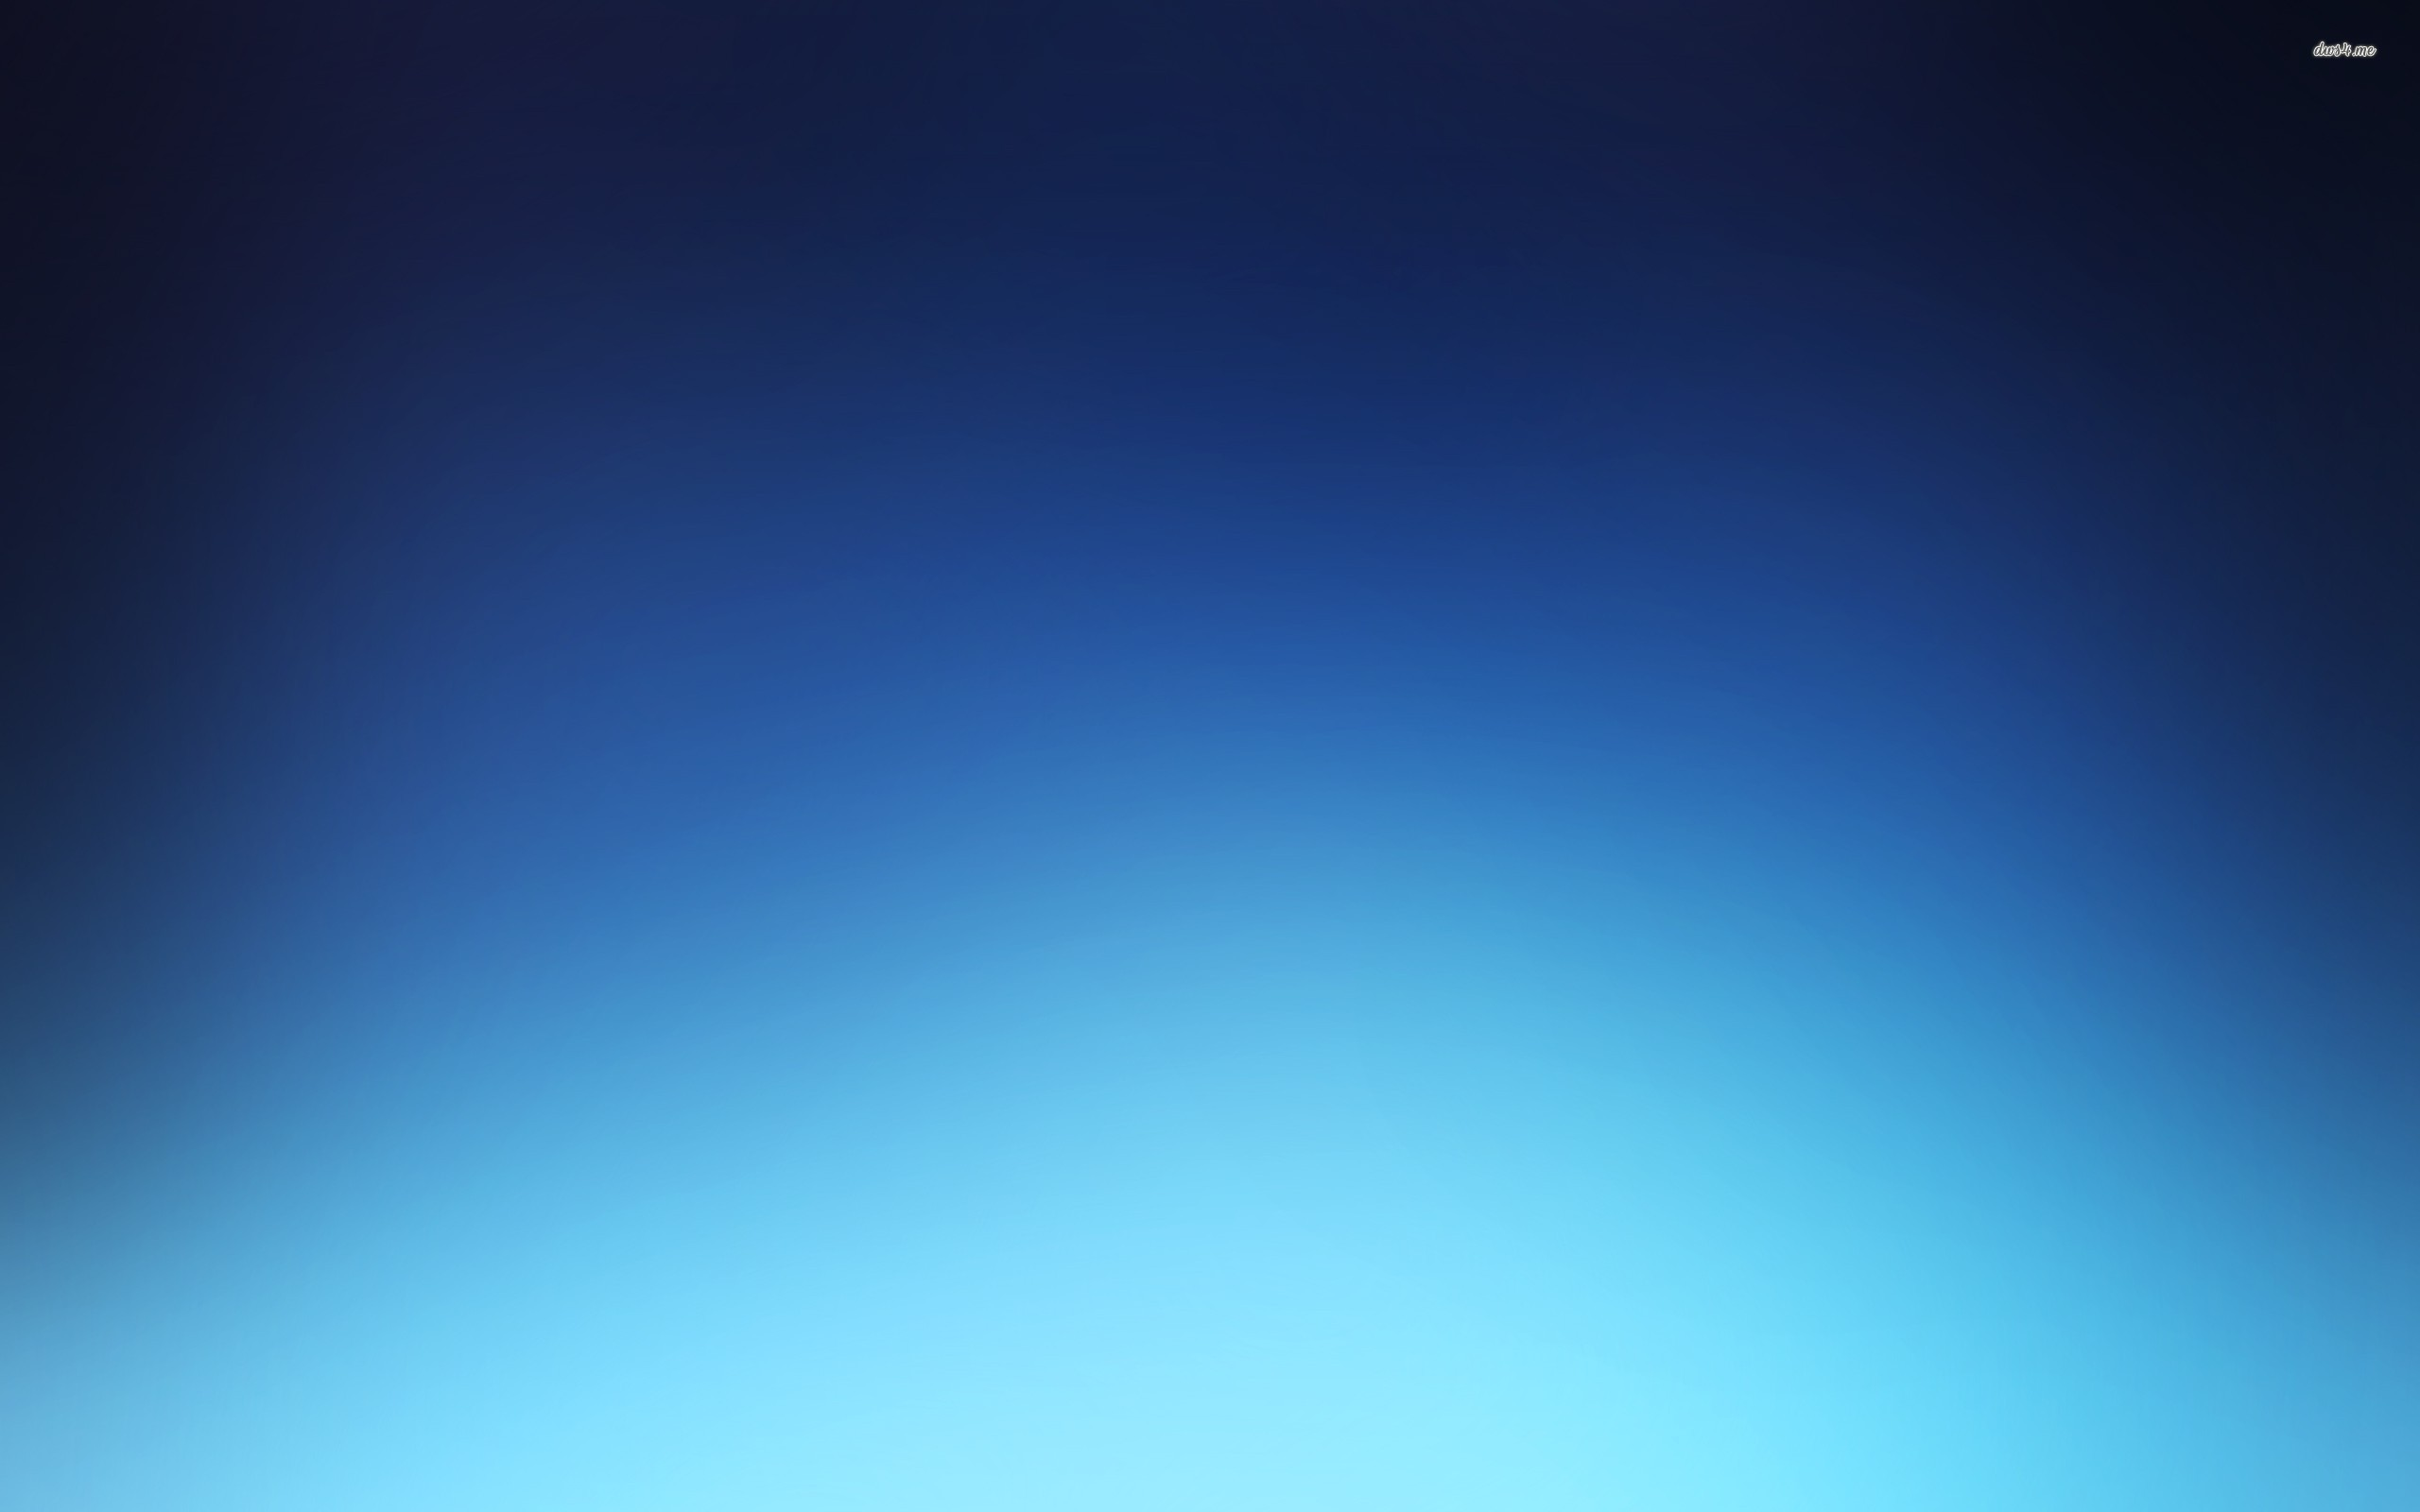 blue color gradient wallpaper 1 sionnach adventure and peak